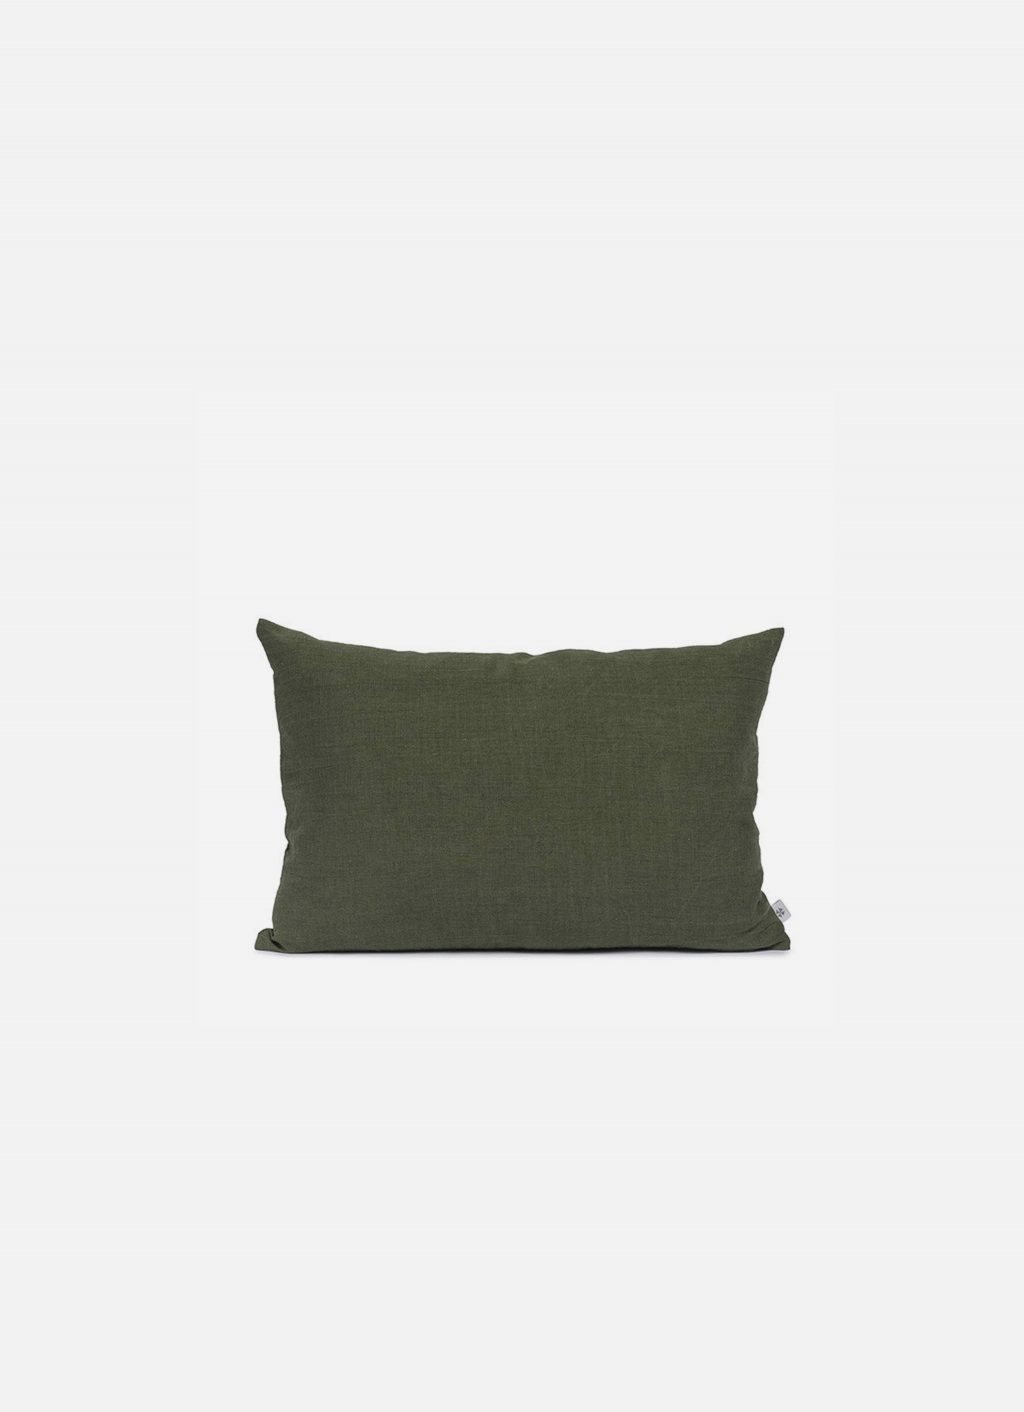 By Mölle - Linen cushion - moss green - 40x60cm